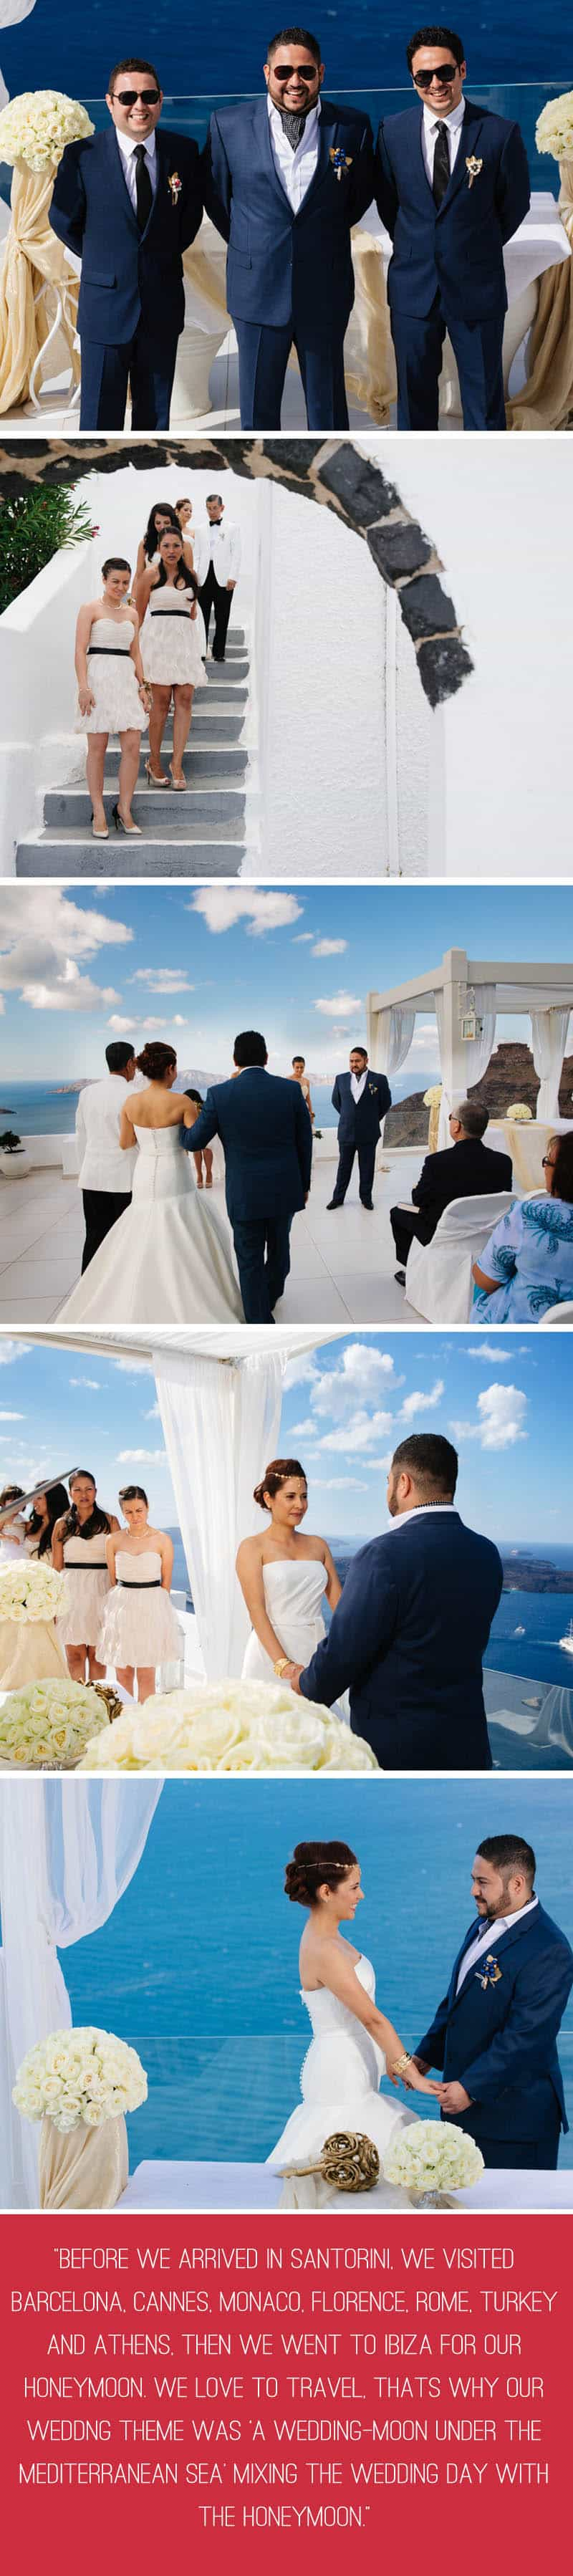 A Travel Themed Destination Wedding in Santorini 3